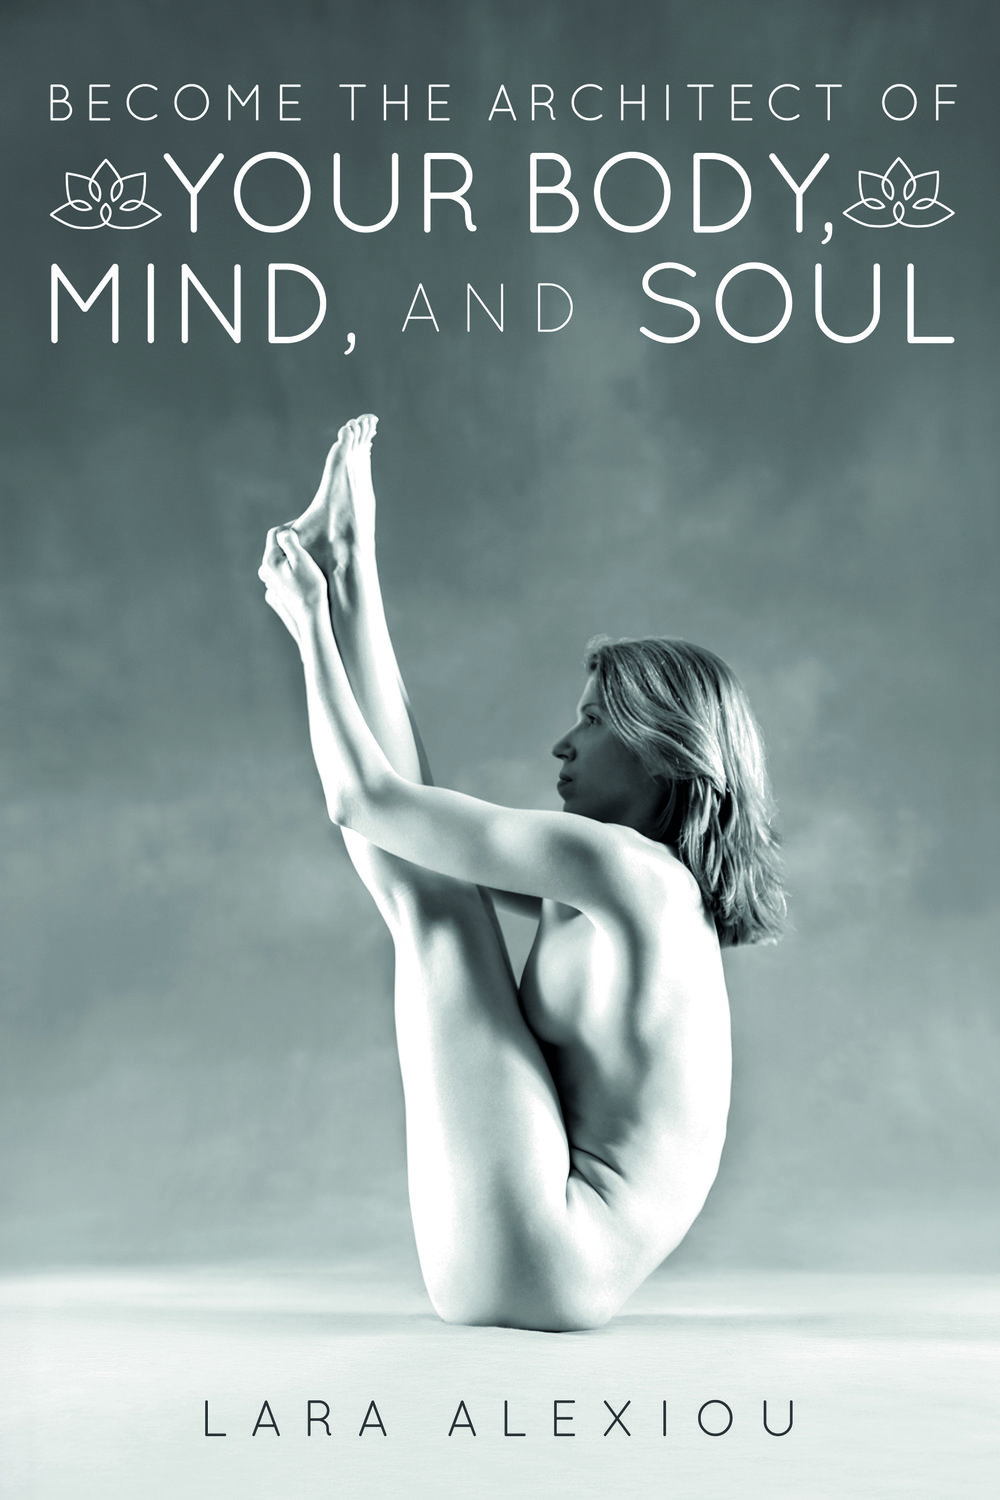 This article is a modified except from the book Become the Architect of Your Body, Mind, and Soul by Lara Alexiou, now on Amazon.